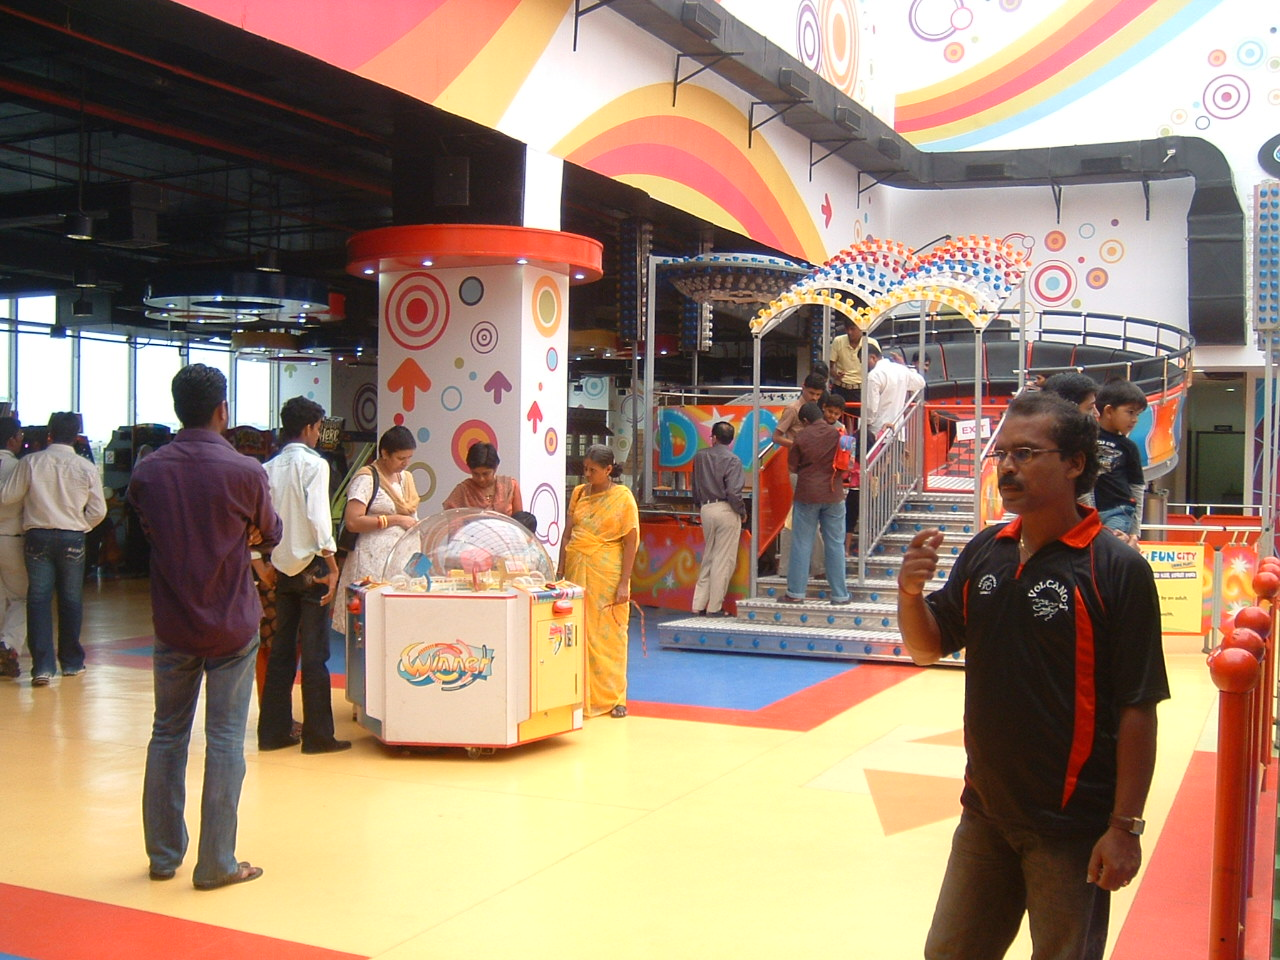 Eternal Romantic: Unadulterated joy at Fun City